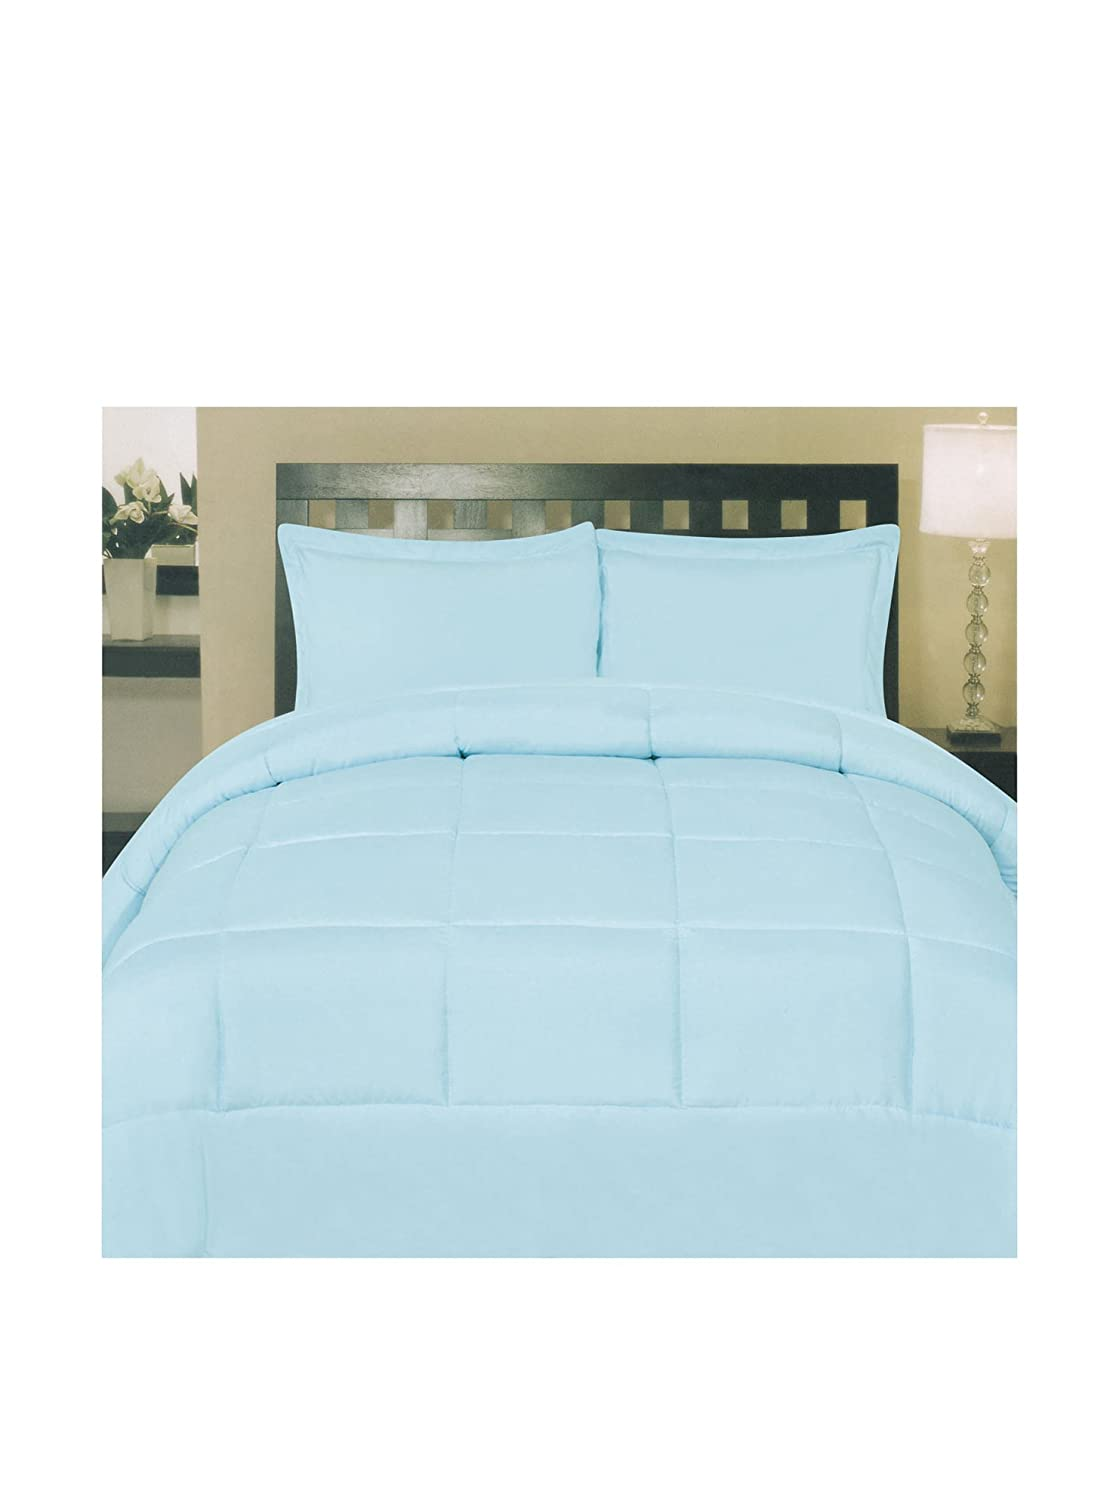 Sweet Home Collection White Goose Down Alternative Comforter, Aqua, Full MSH-COMF-LBL-F